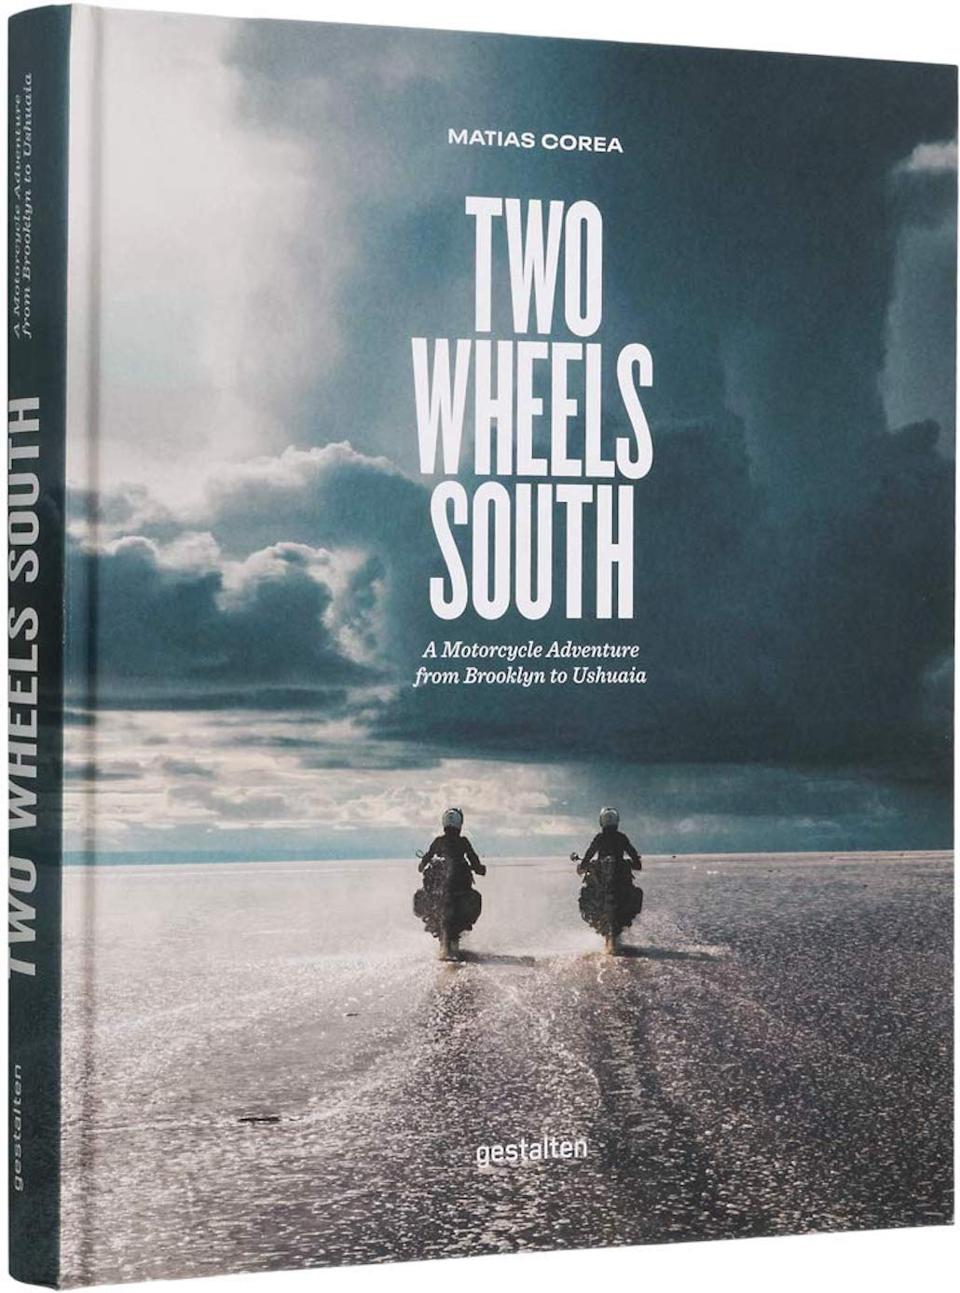 Two Wheels South: A Motorcycle Adventure from Brooklyn to Ushuaia by Matias Corea